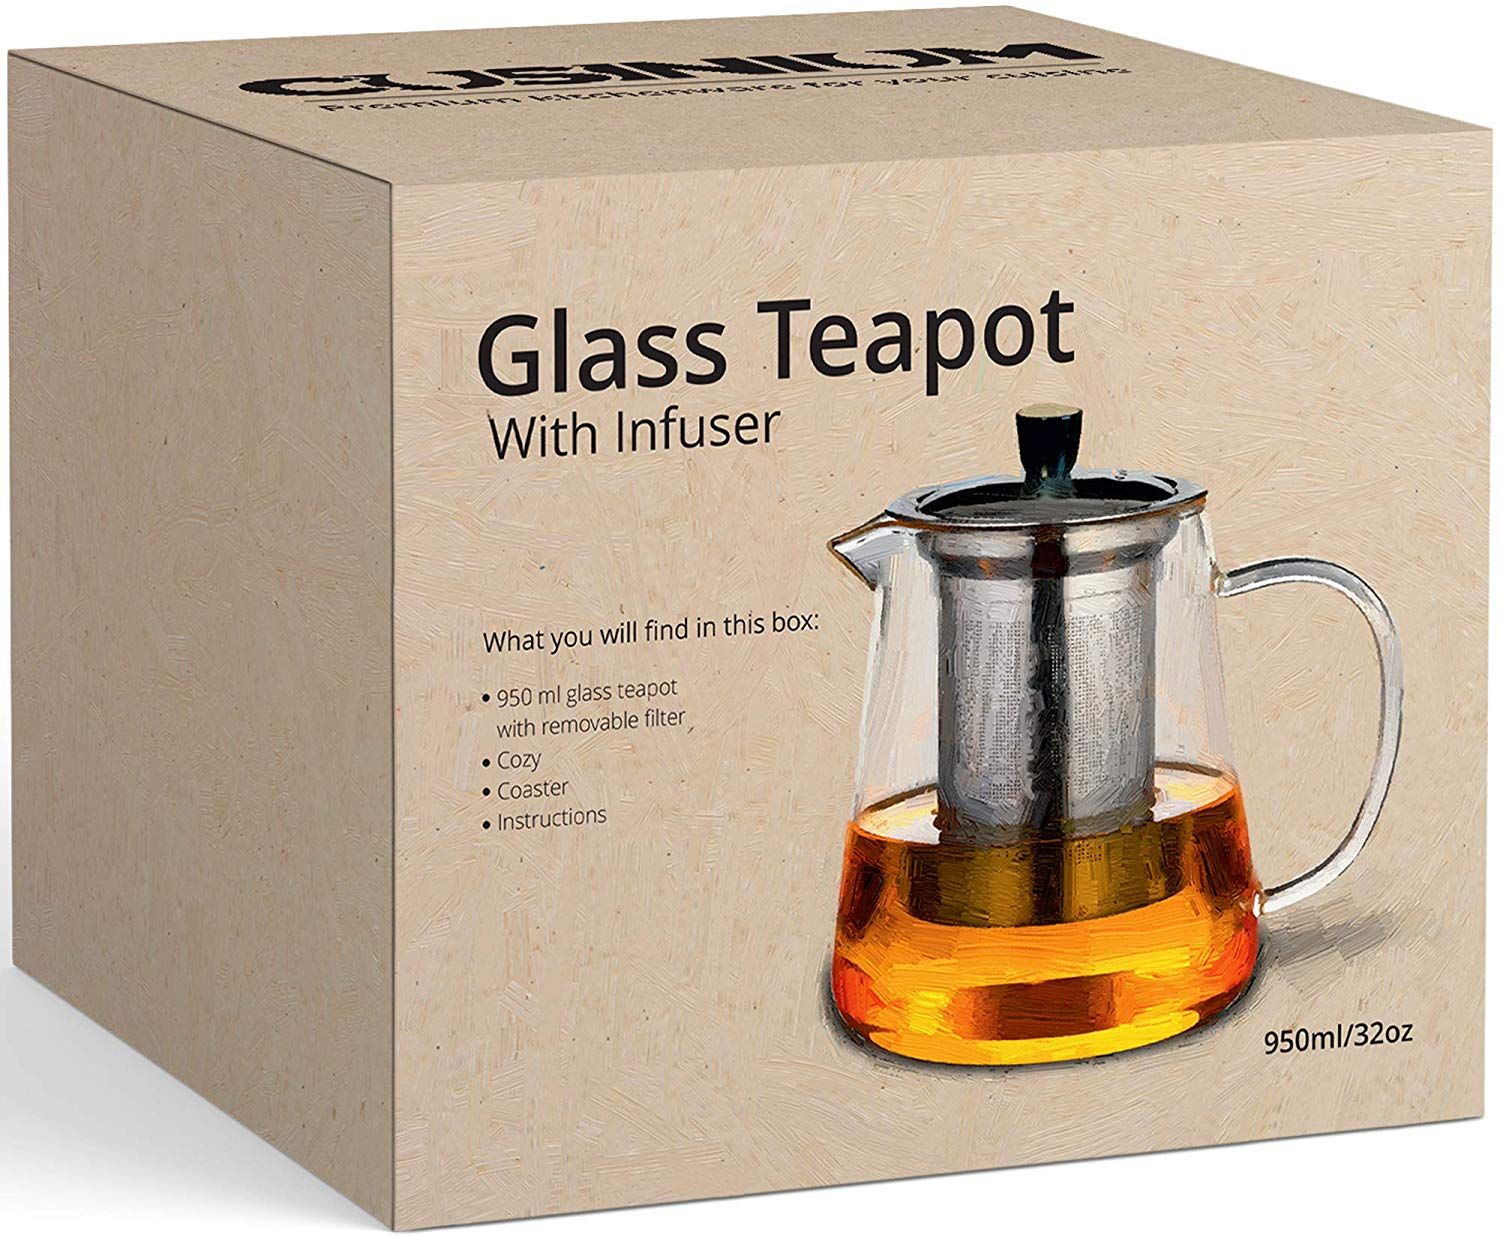 Cusinium glass teapot for hot and cold tea with infuser set